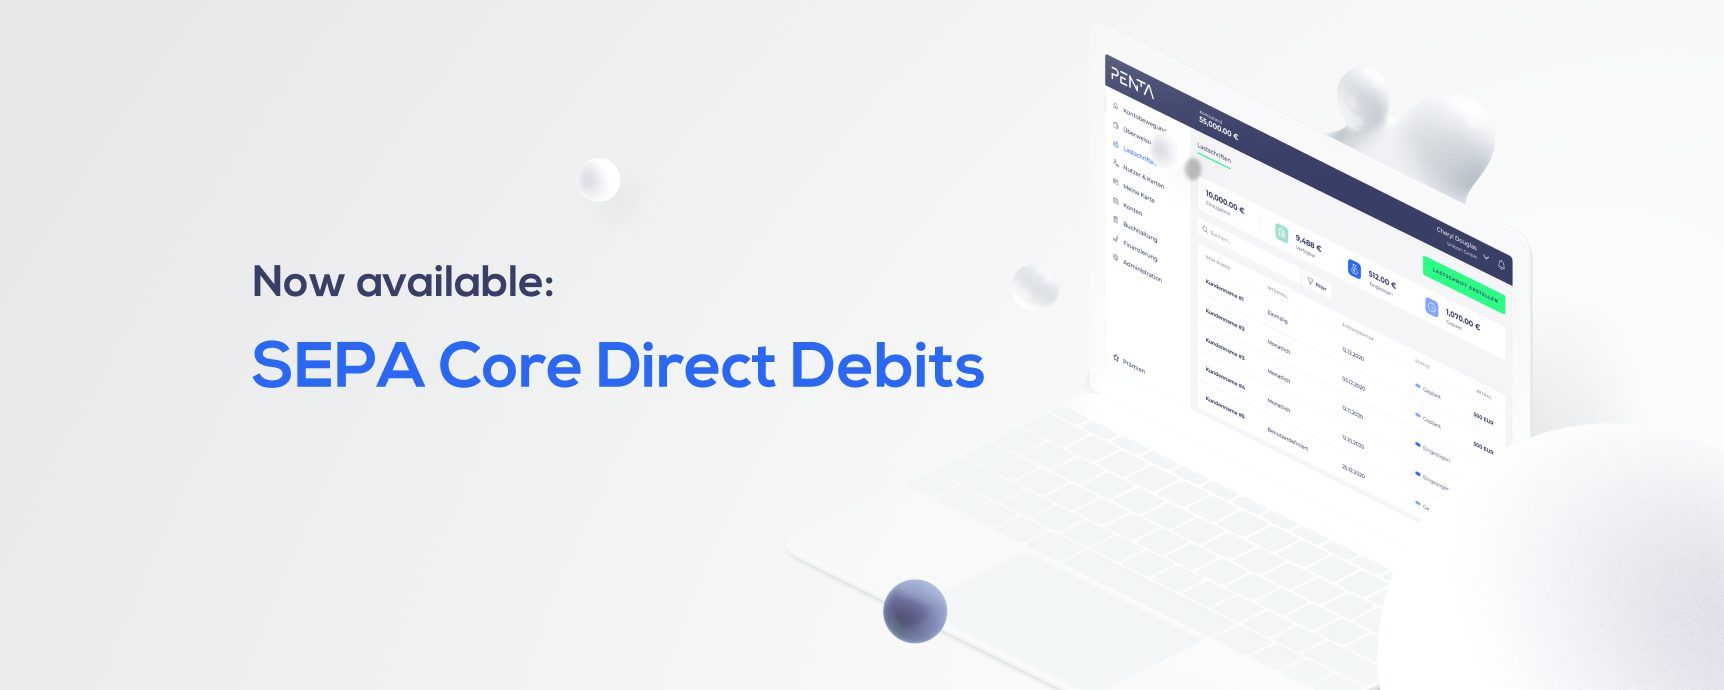 Now available SEPA Core Direct Debits with Penta